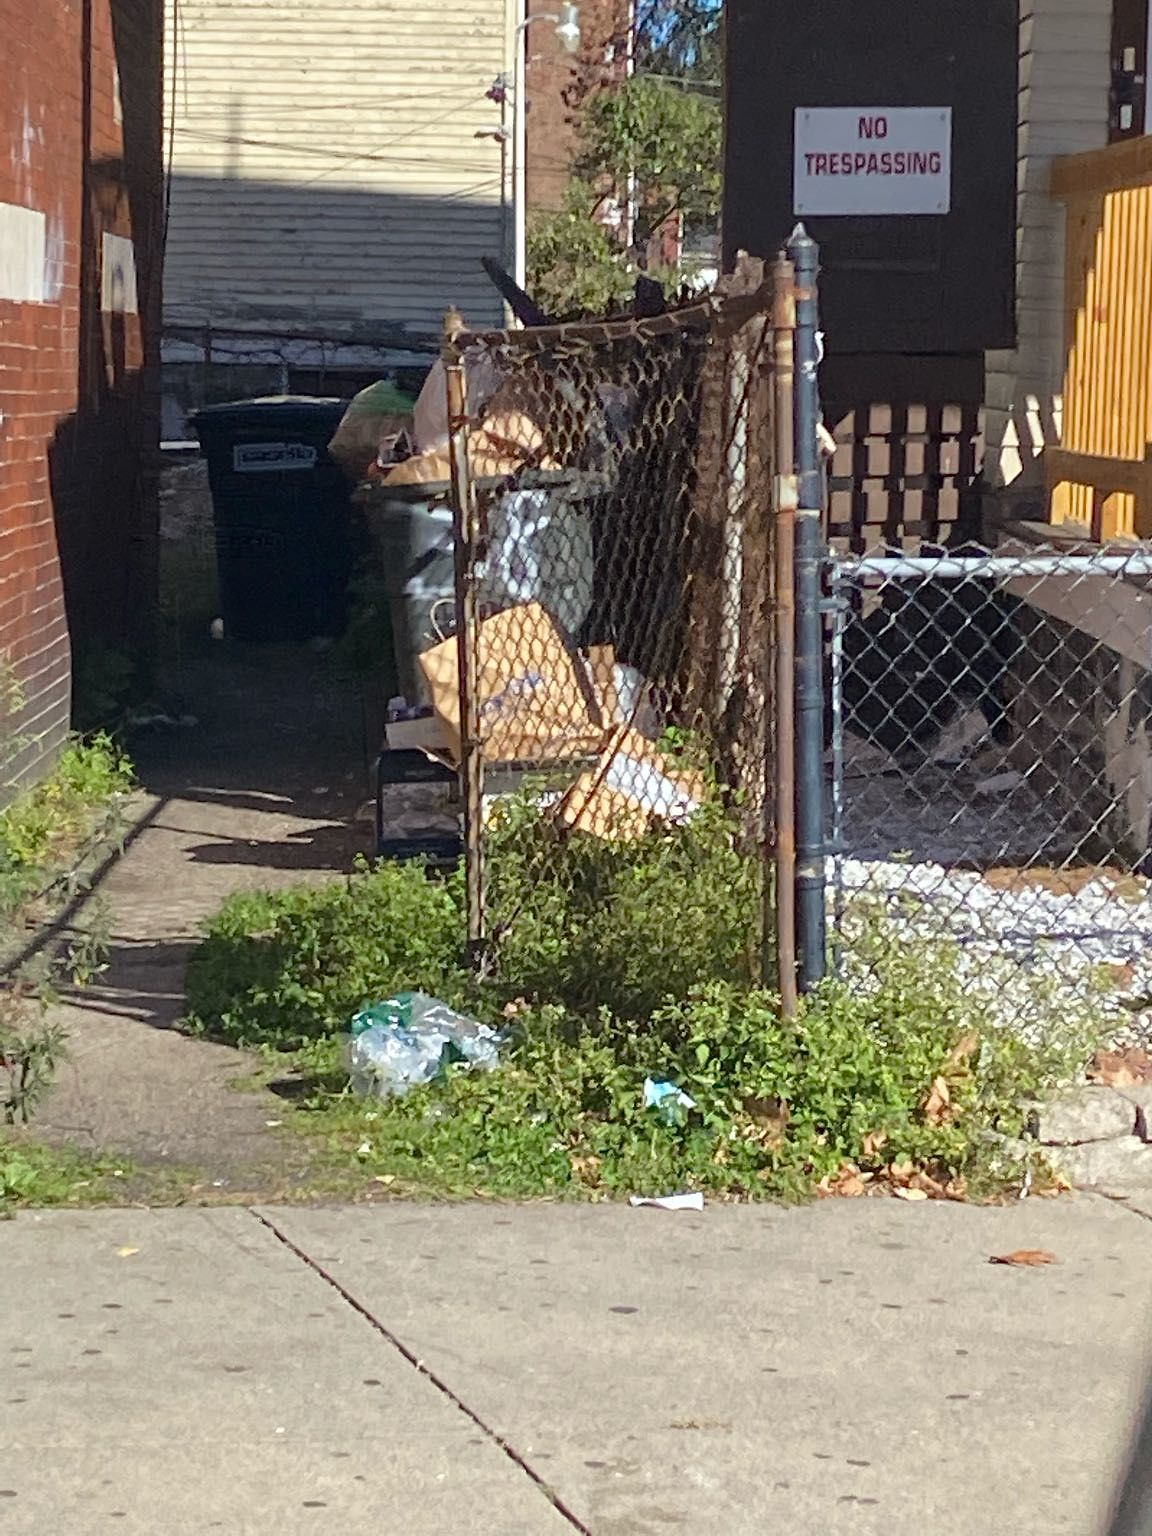 Trash overflowing in yard.  Rats running around in yard and on sidewalk near bus stop.